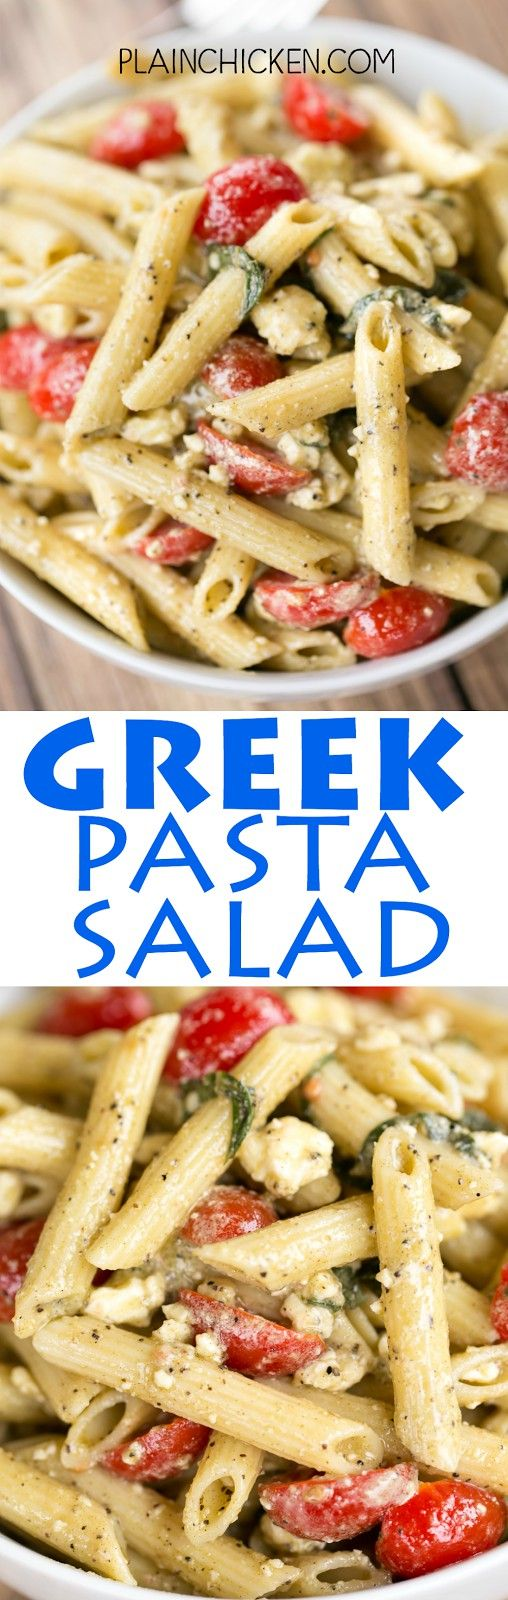 Greek Pasta Salad - seriously THE BEST! I could make a meal out of this pasta salad!!! Penne pasta, olive oil, lemon juice, mayonnaise, Greek seasoning, grape tomatoes, feta and basil. Makes a ton. Great for a potluck. Can easily half the recipe. Easy and (chicken egg noodle soup easy)